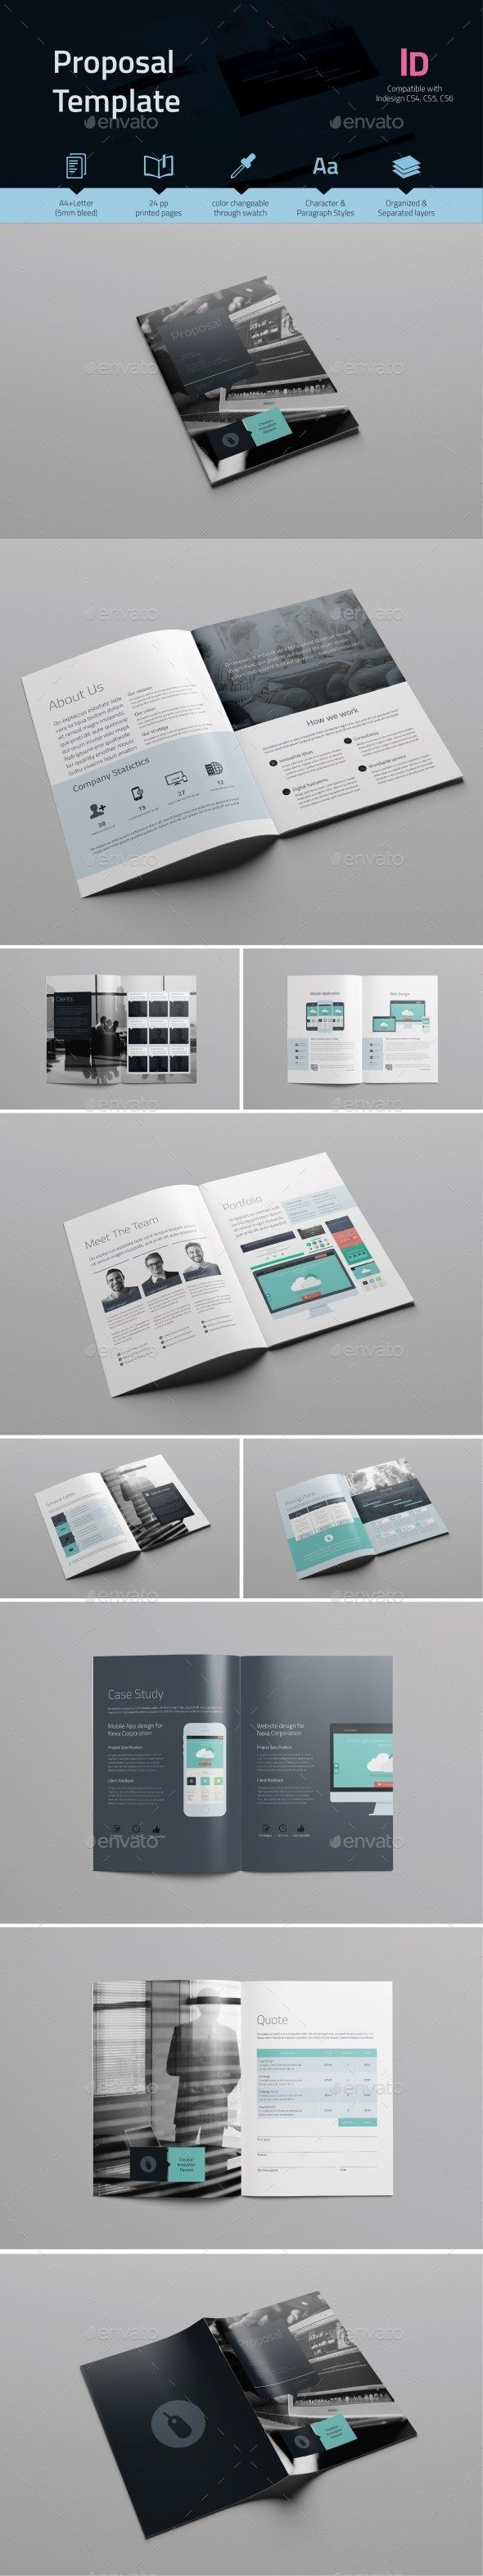 Buy Proposal Template by tontuz on GraphicRiver